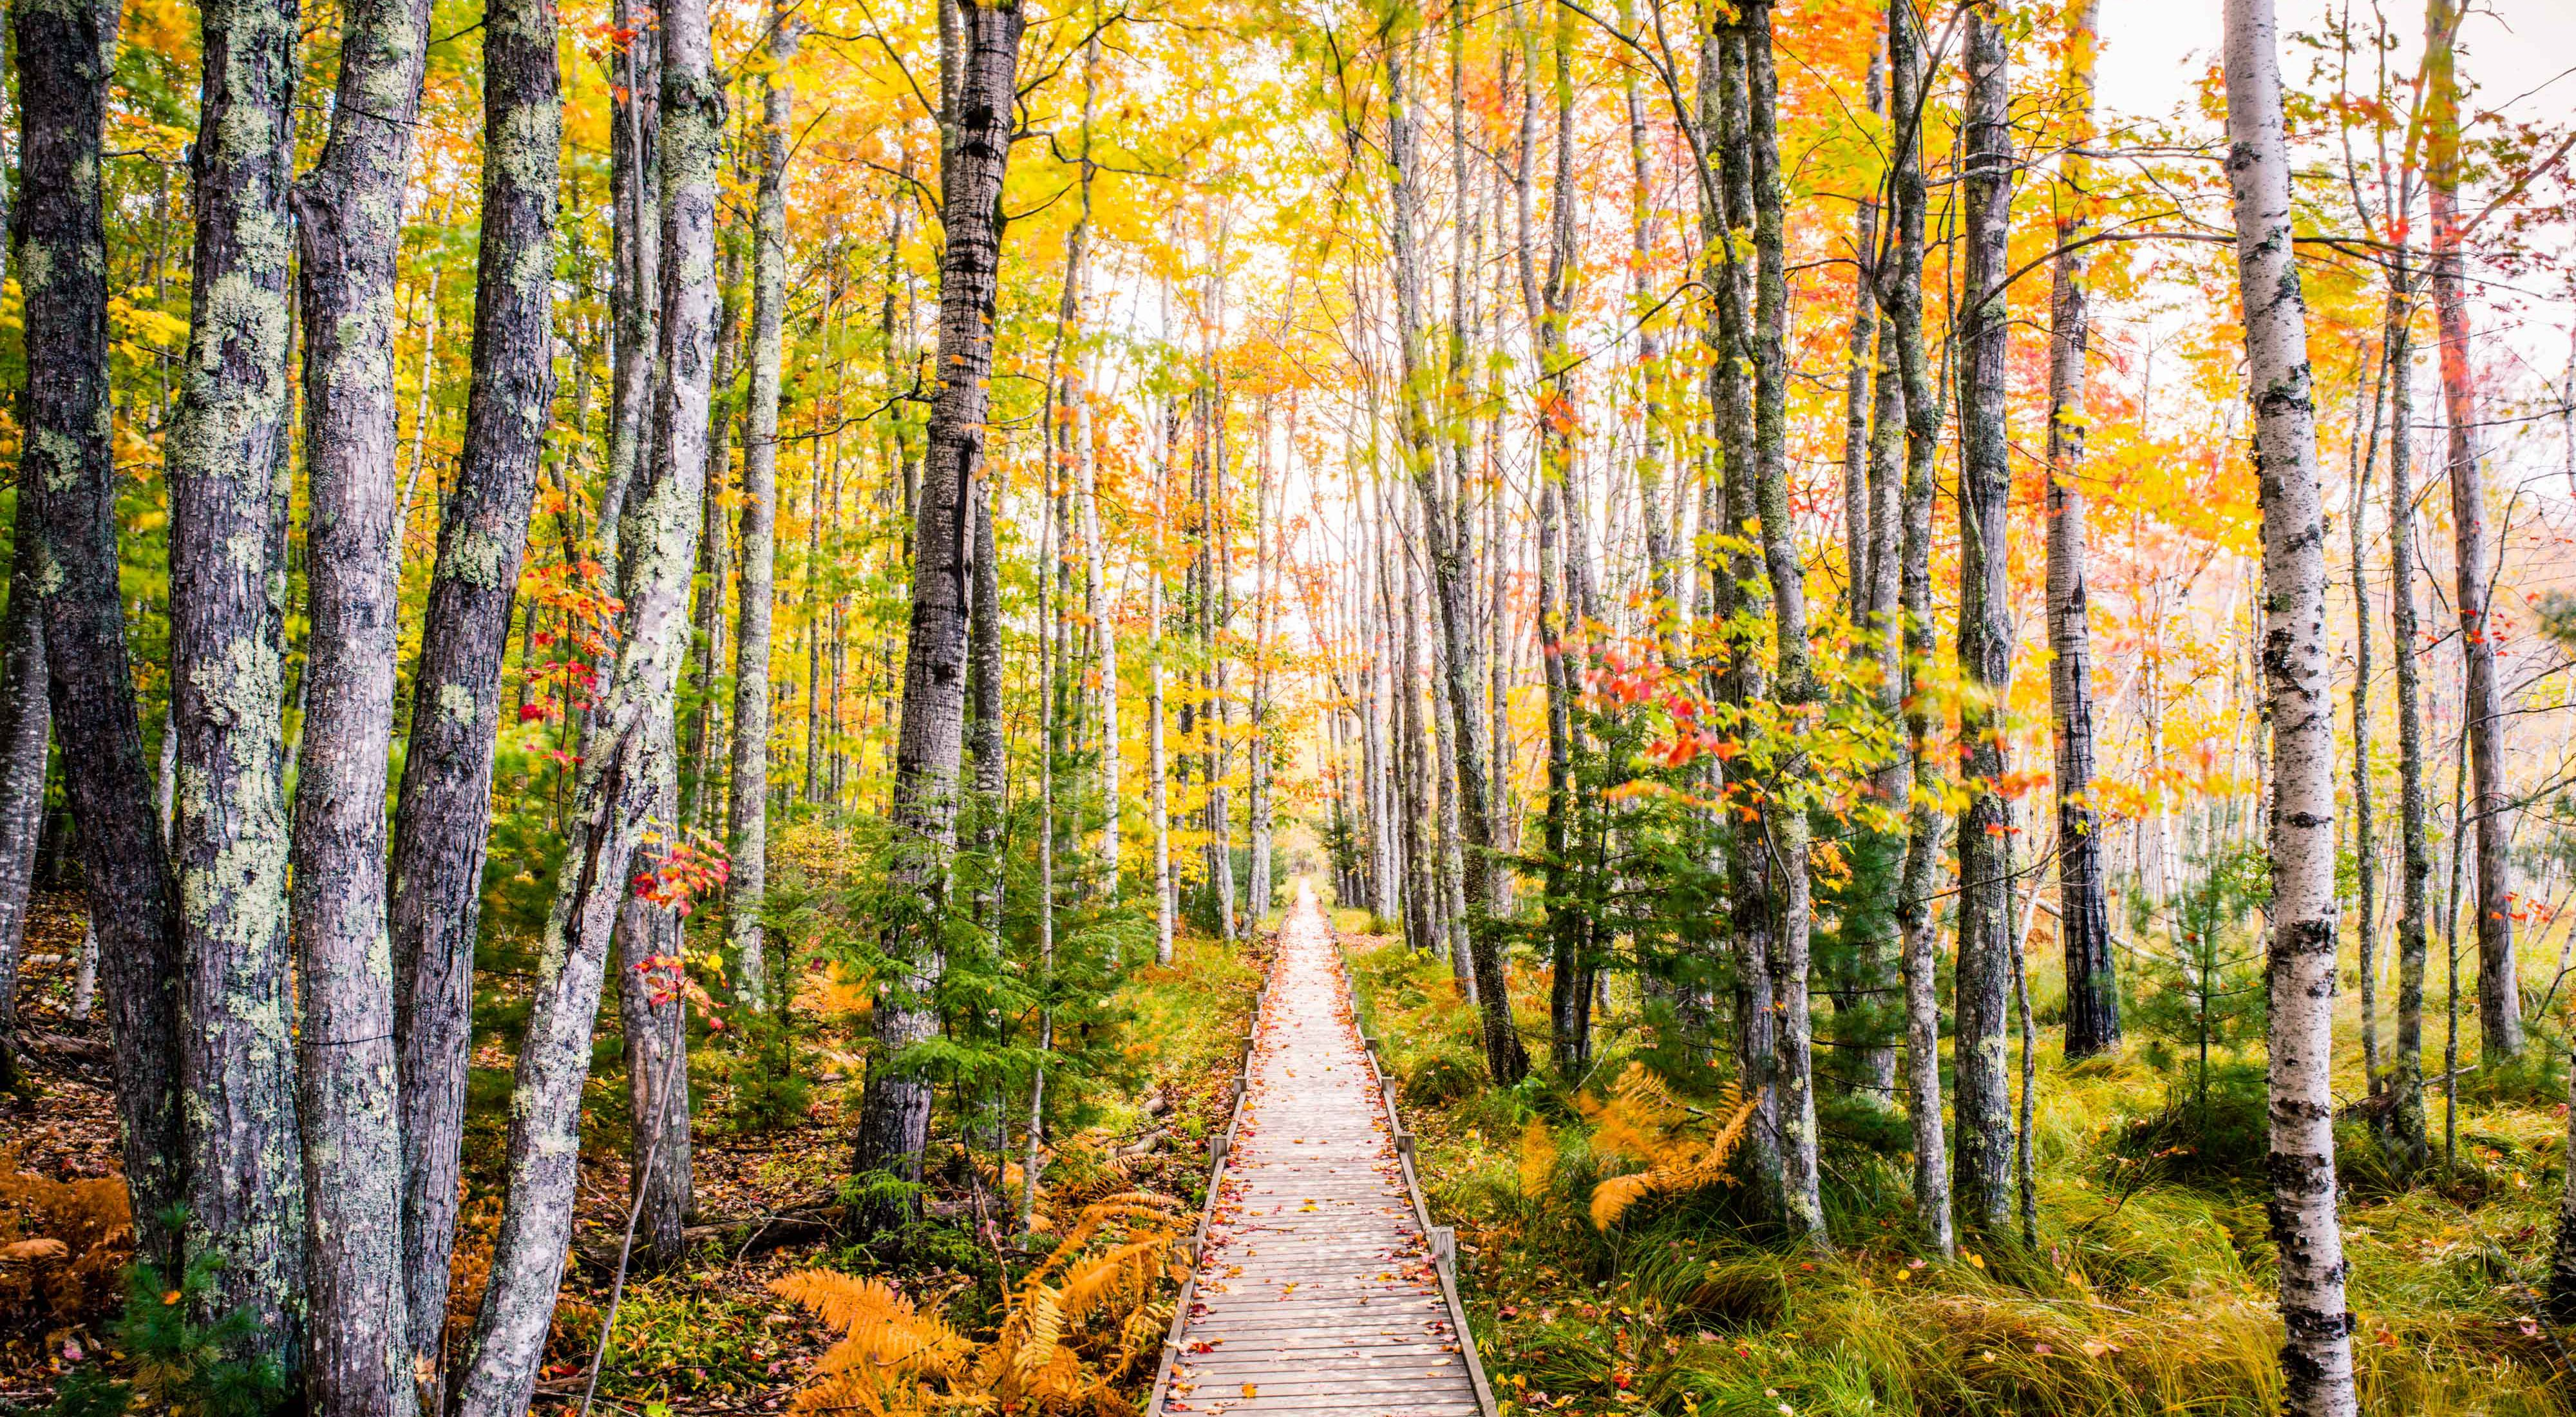 Photo of a path in a forest in autumn colors.